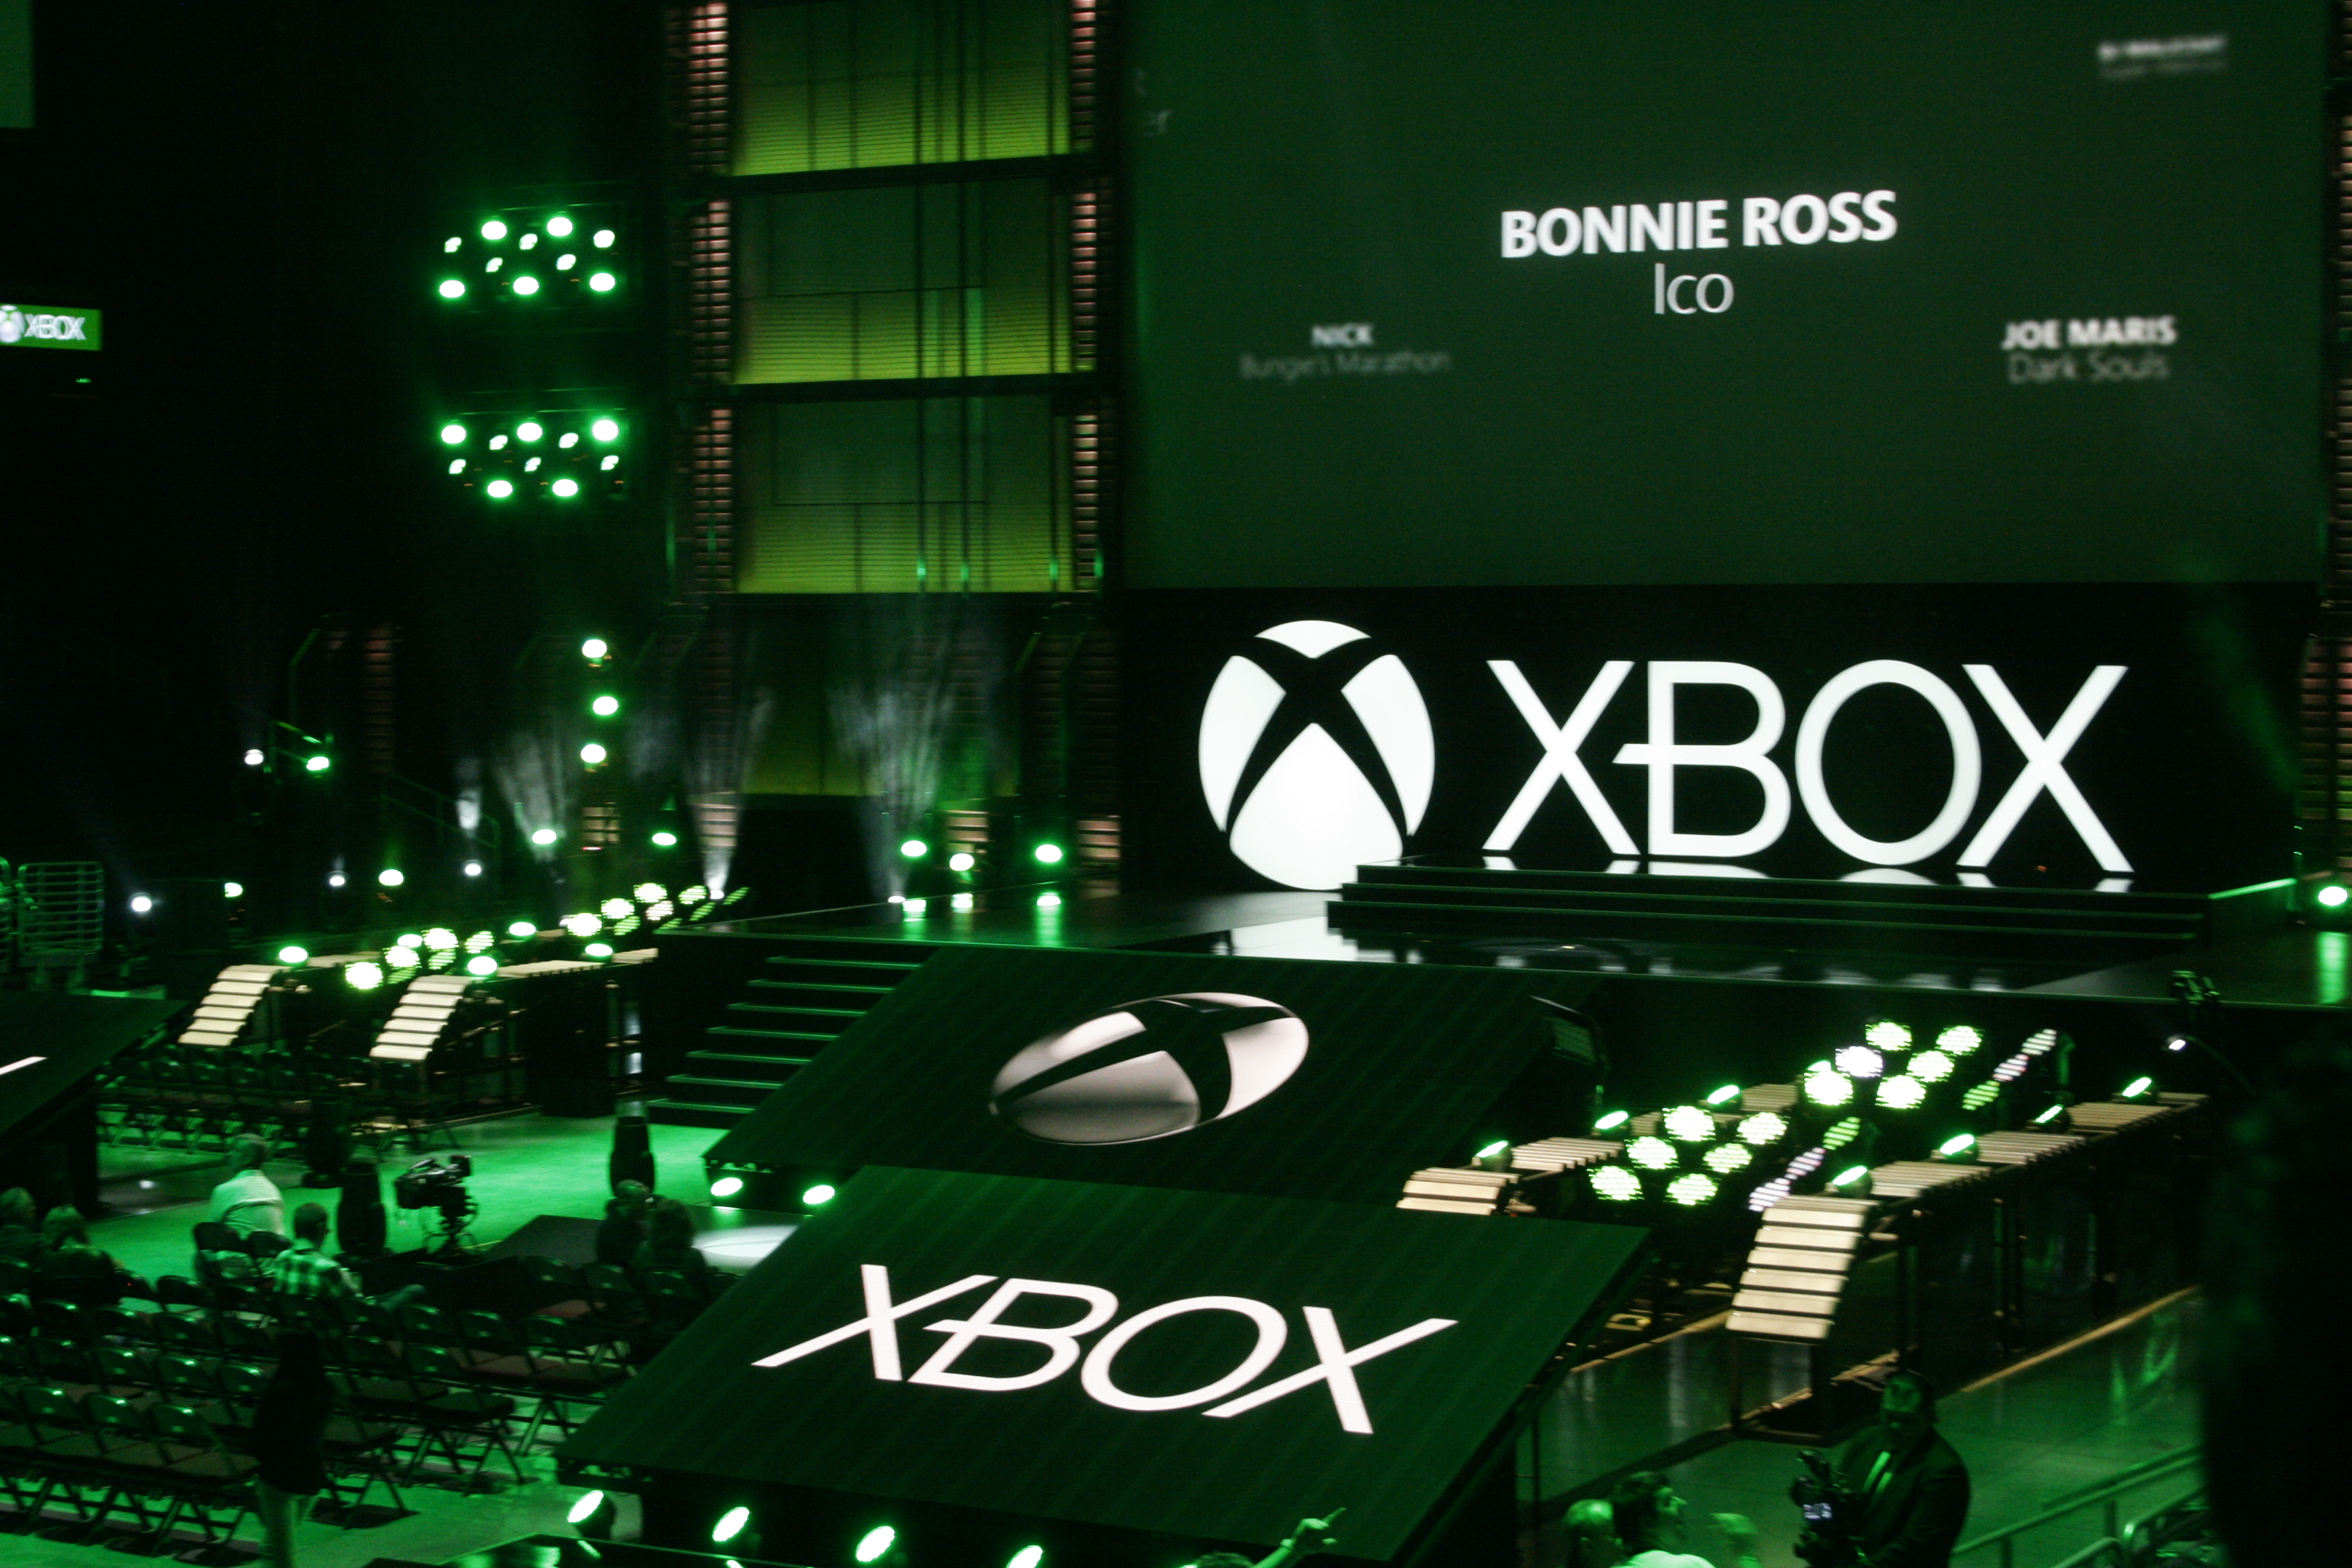 Live from Microsoft's E3 Event